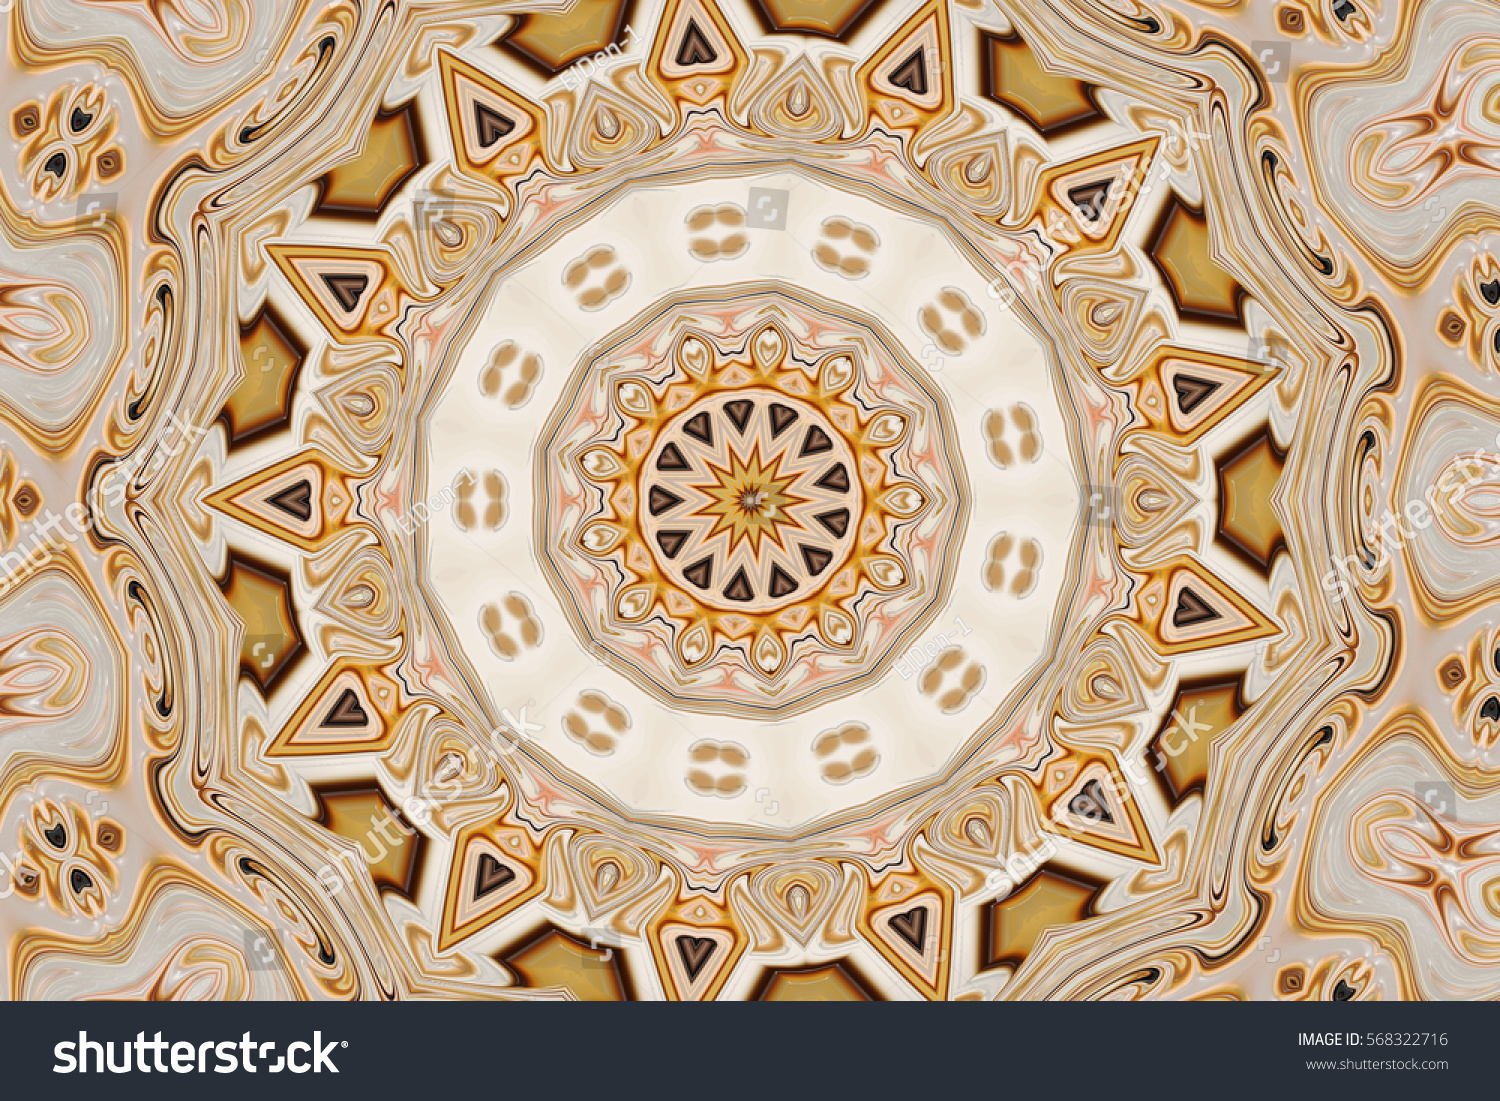 Best Wallpaper Marble Mandala - stock-photo-modern-kaleidoscope-background-decor-mandala-for-design-wallpaper-fabric-568322716  Photograph_315599.jpg